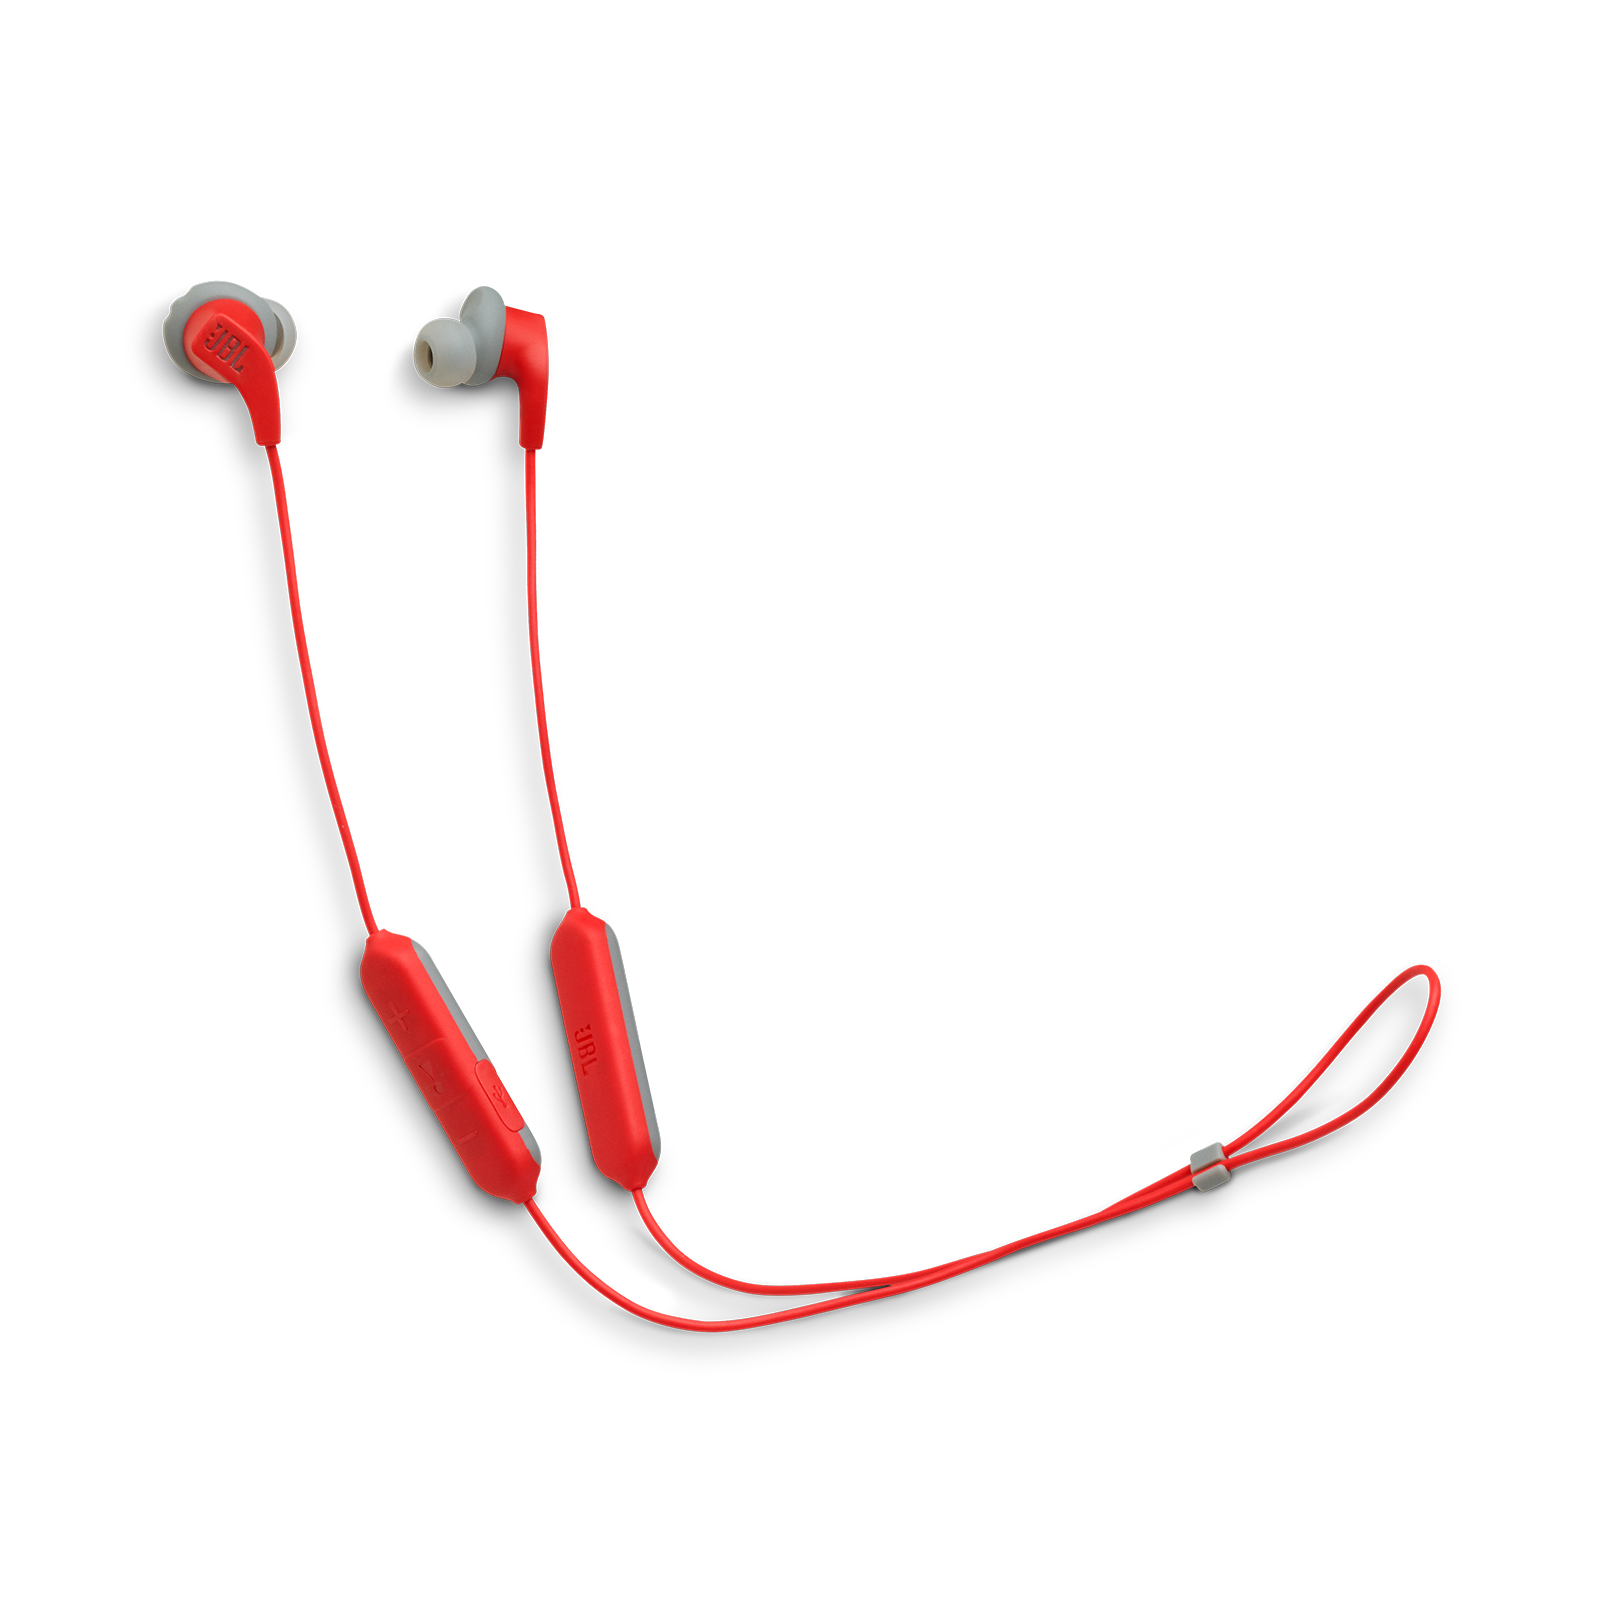 JBL Endurance RUNBT - Red - Sweatproof Wireless In-Ear Sport Headphones - Hero